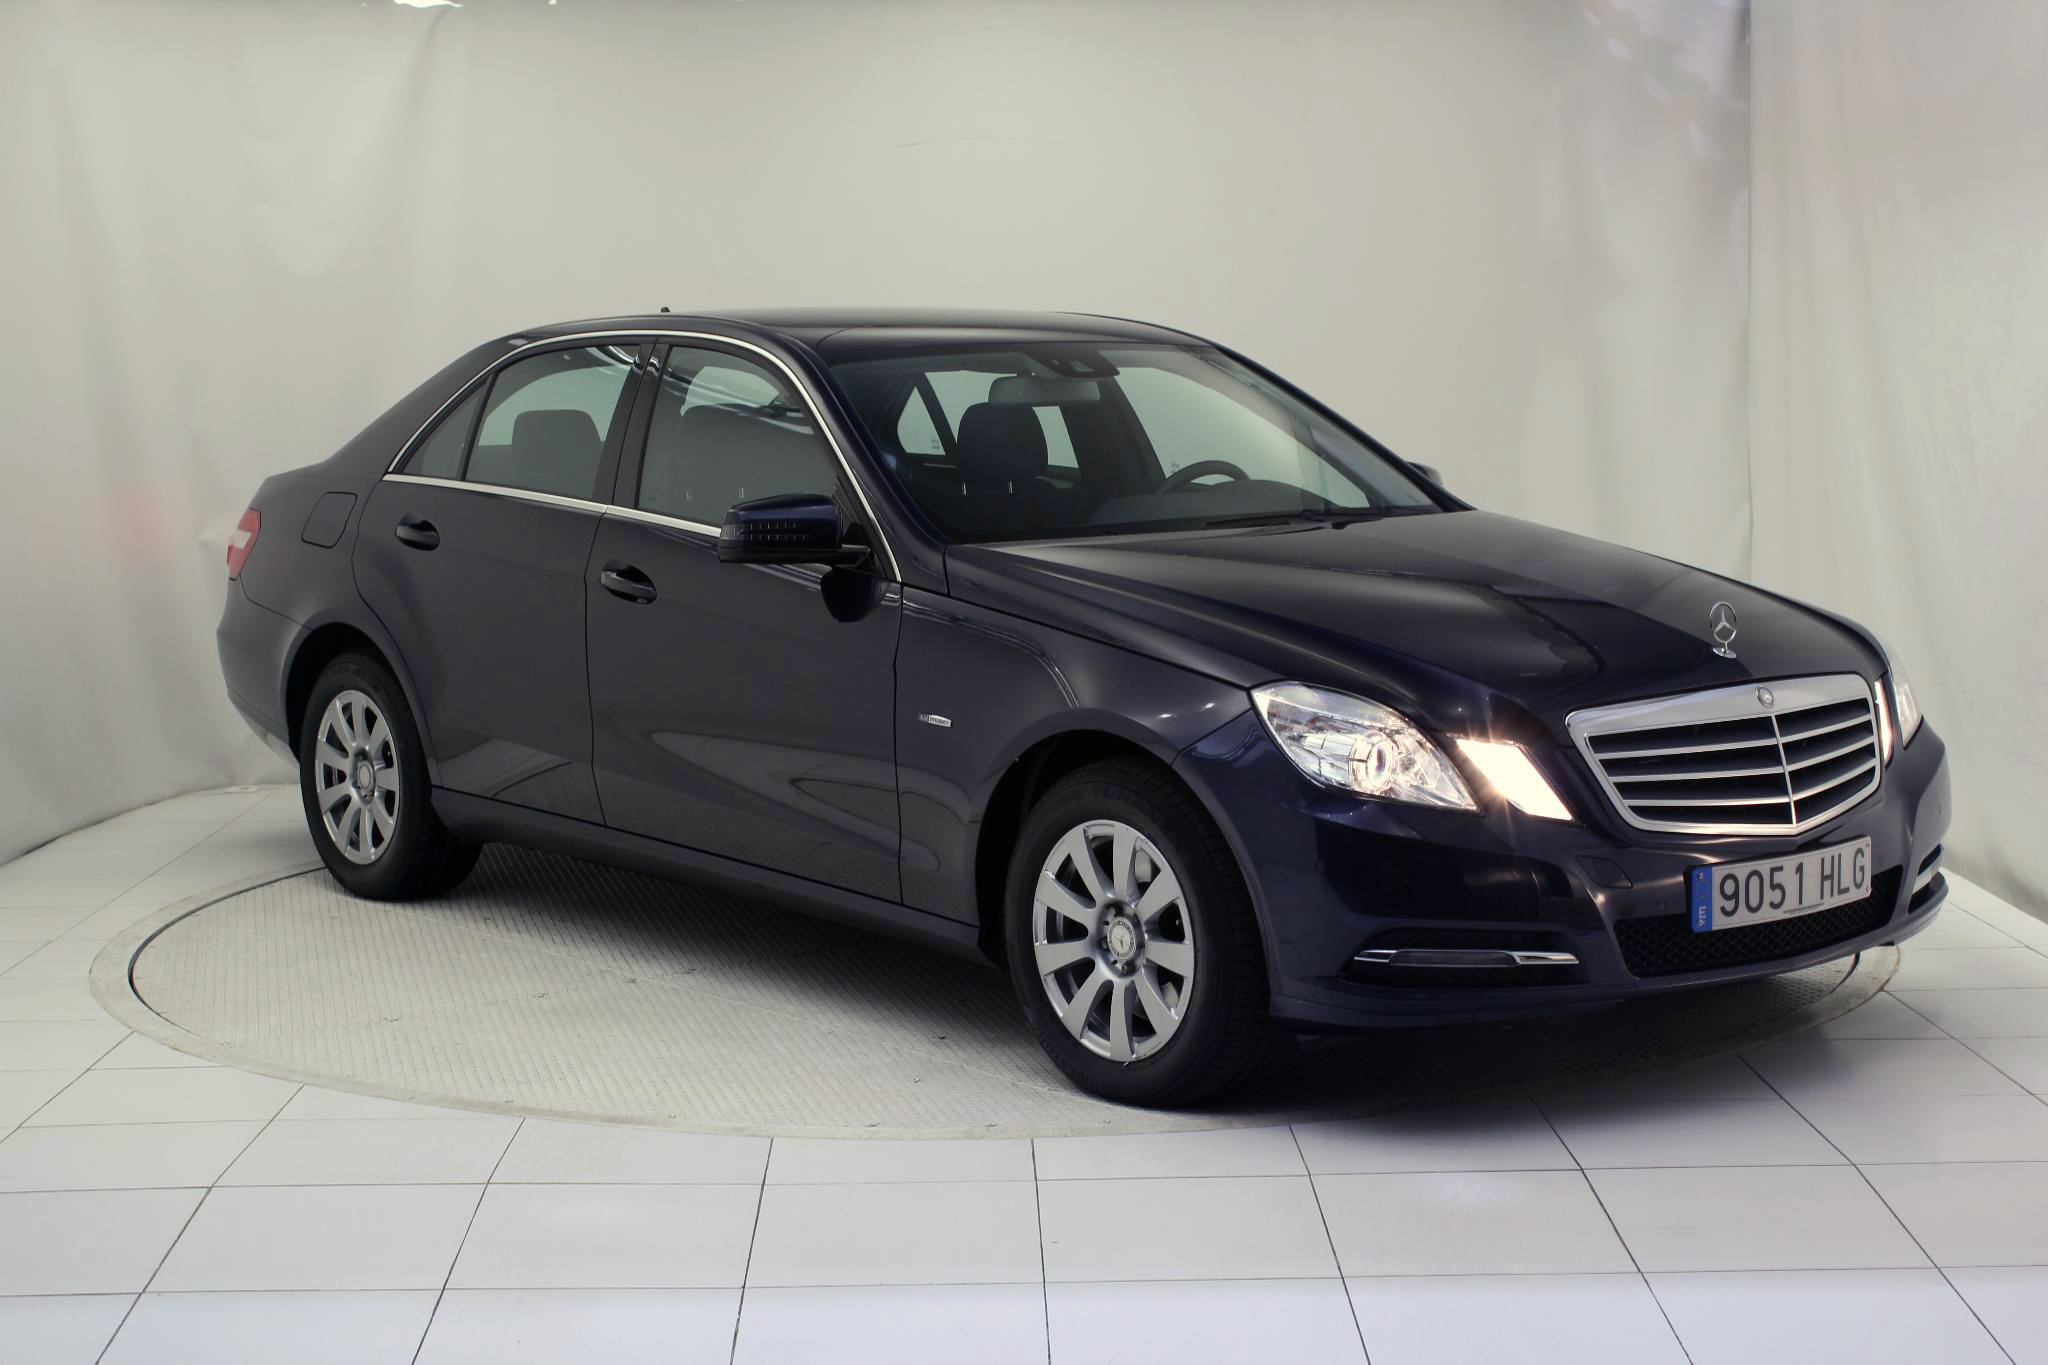 Mercedes-Benz Clase E CLASE E 250 CDI BLUE EFFICIENCY AUTO imagen 3